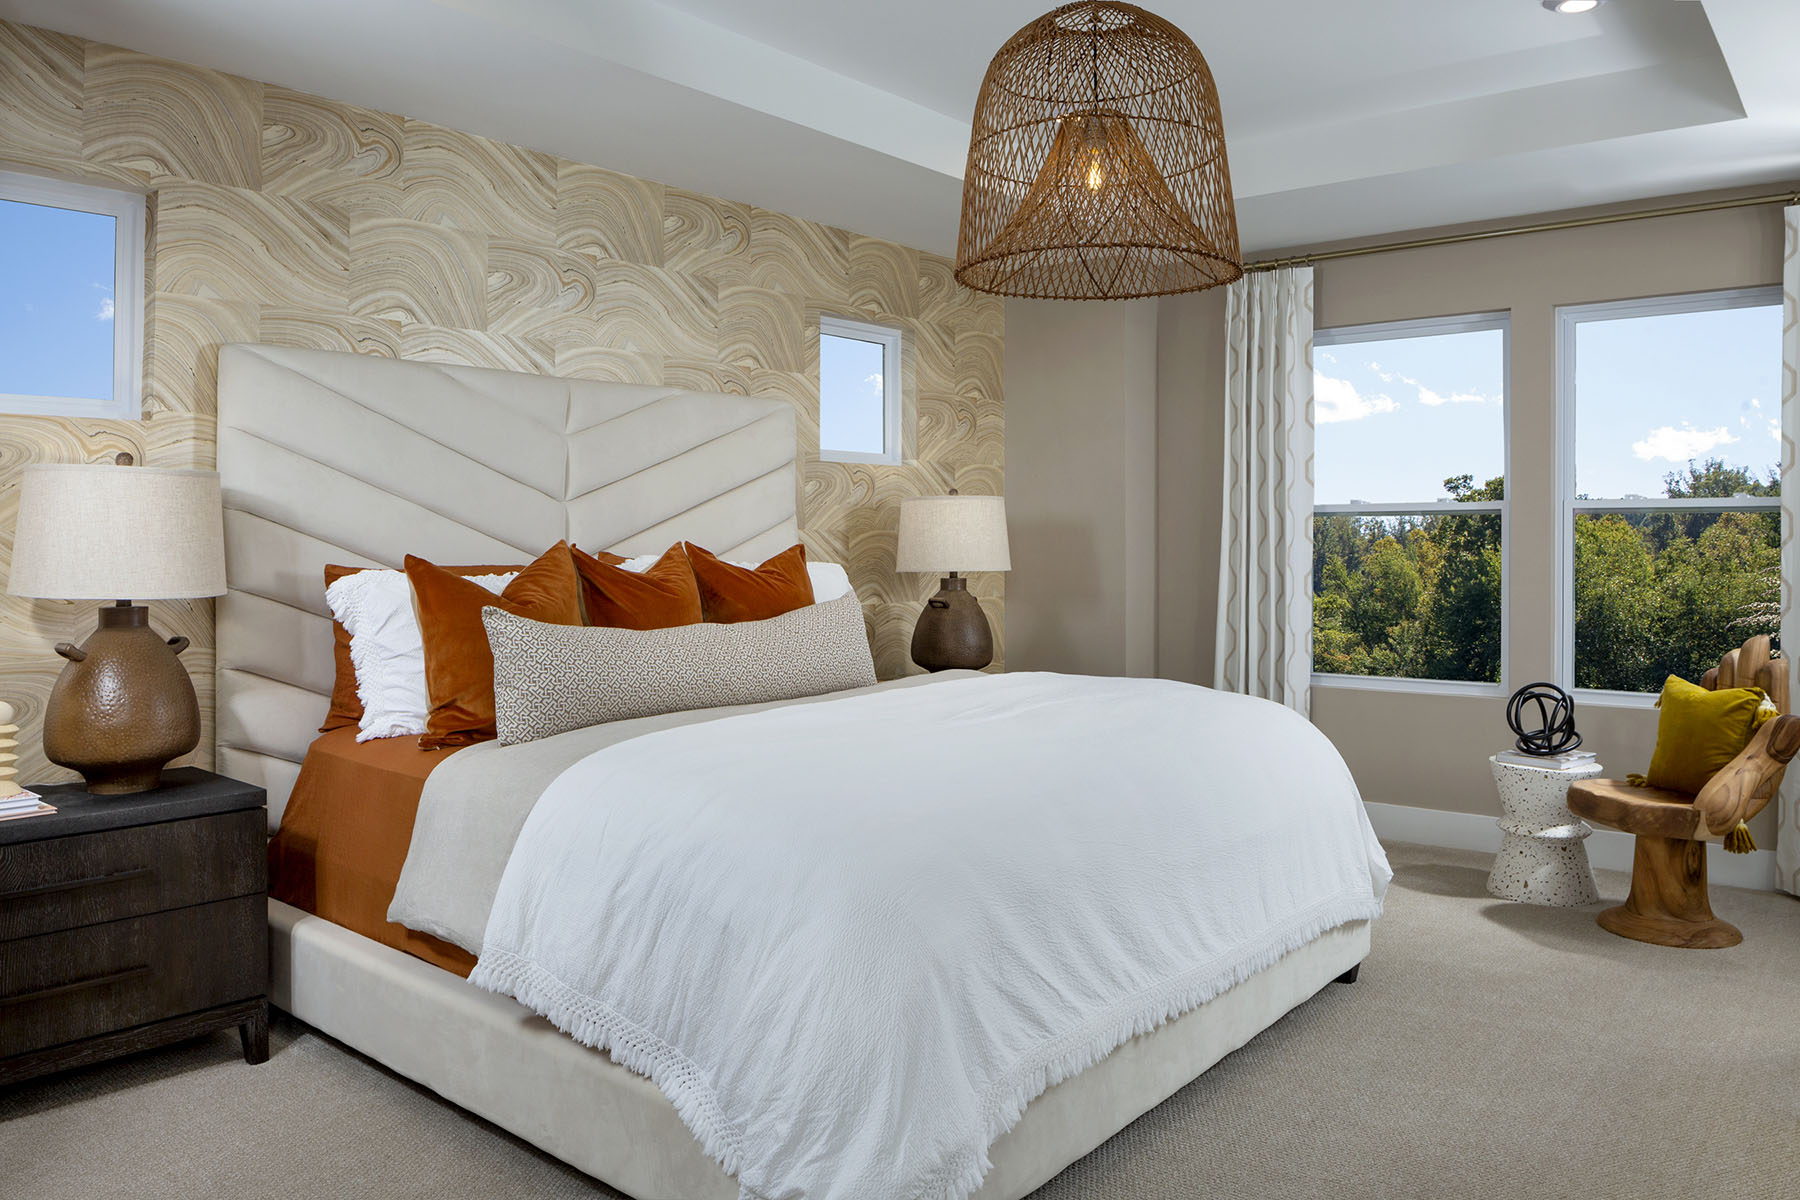 Gramercy Plan Bedroom at Aria at The Park in Charlotte North Carolina by Mattamy Homes